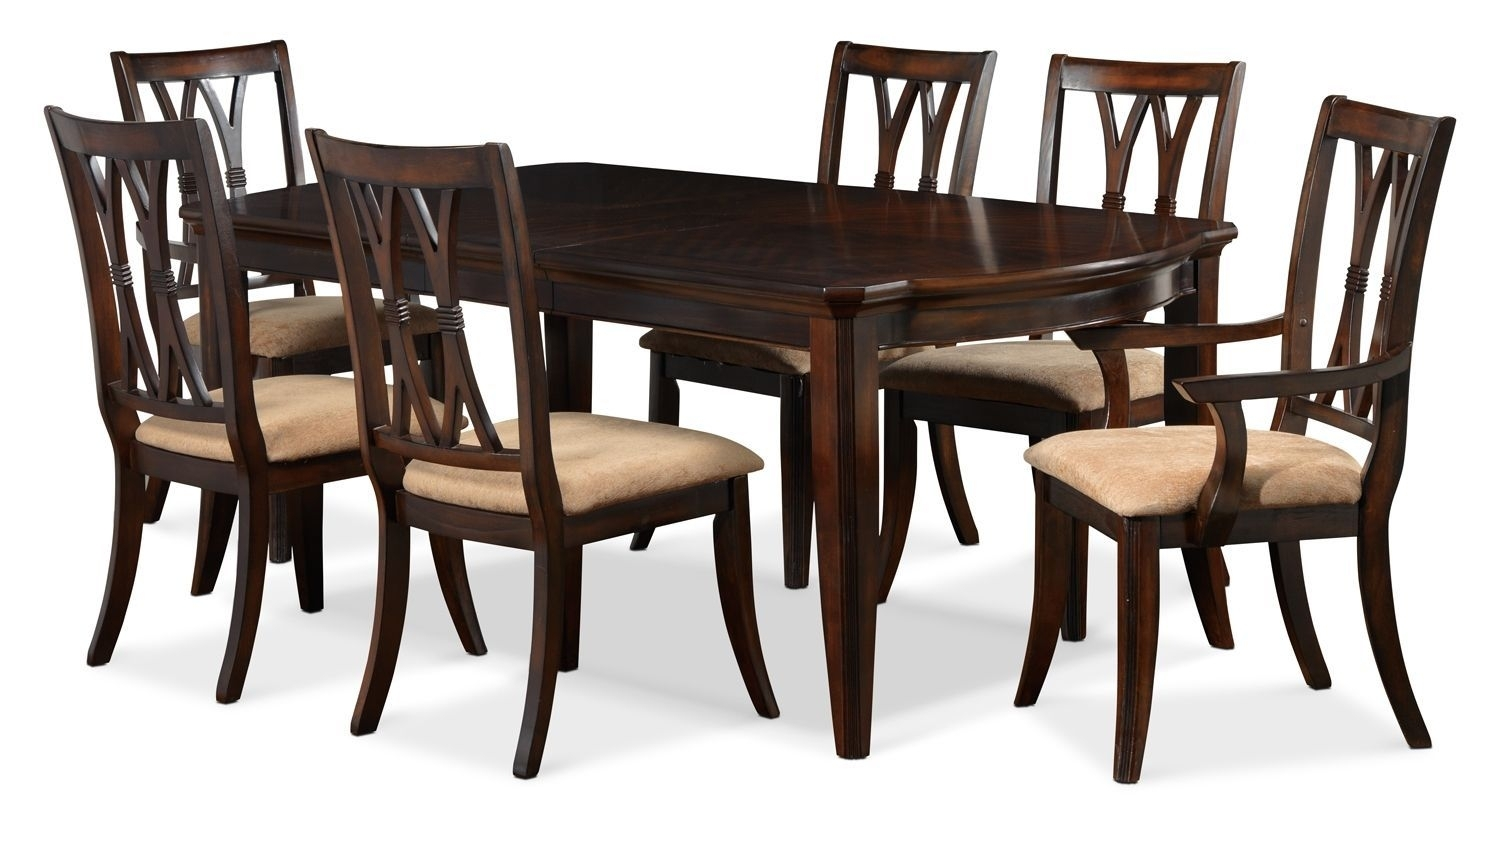 Magnificent 5 Piece Dining Set Wood Breakfast Furniture 4 Chairs And Pertaining To Most Recent Leon 7 Piece Dining Sets (View 7 of 20)